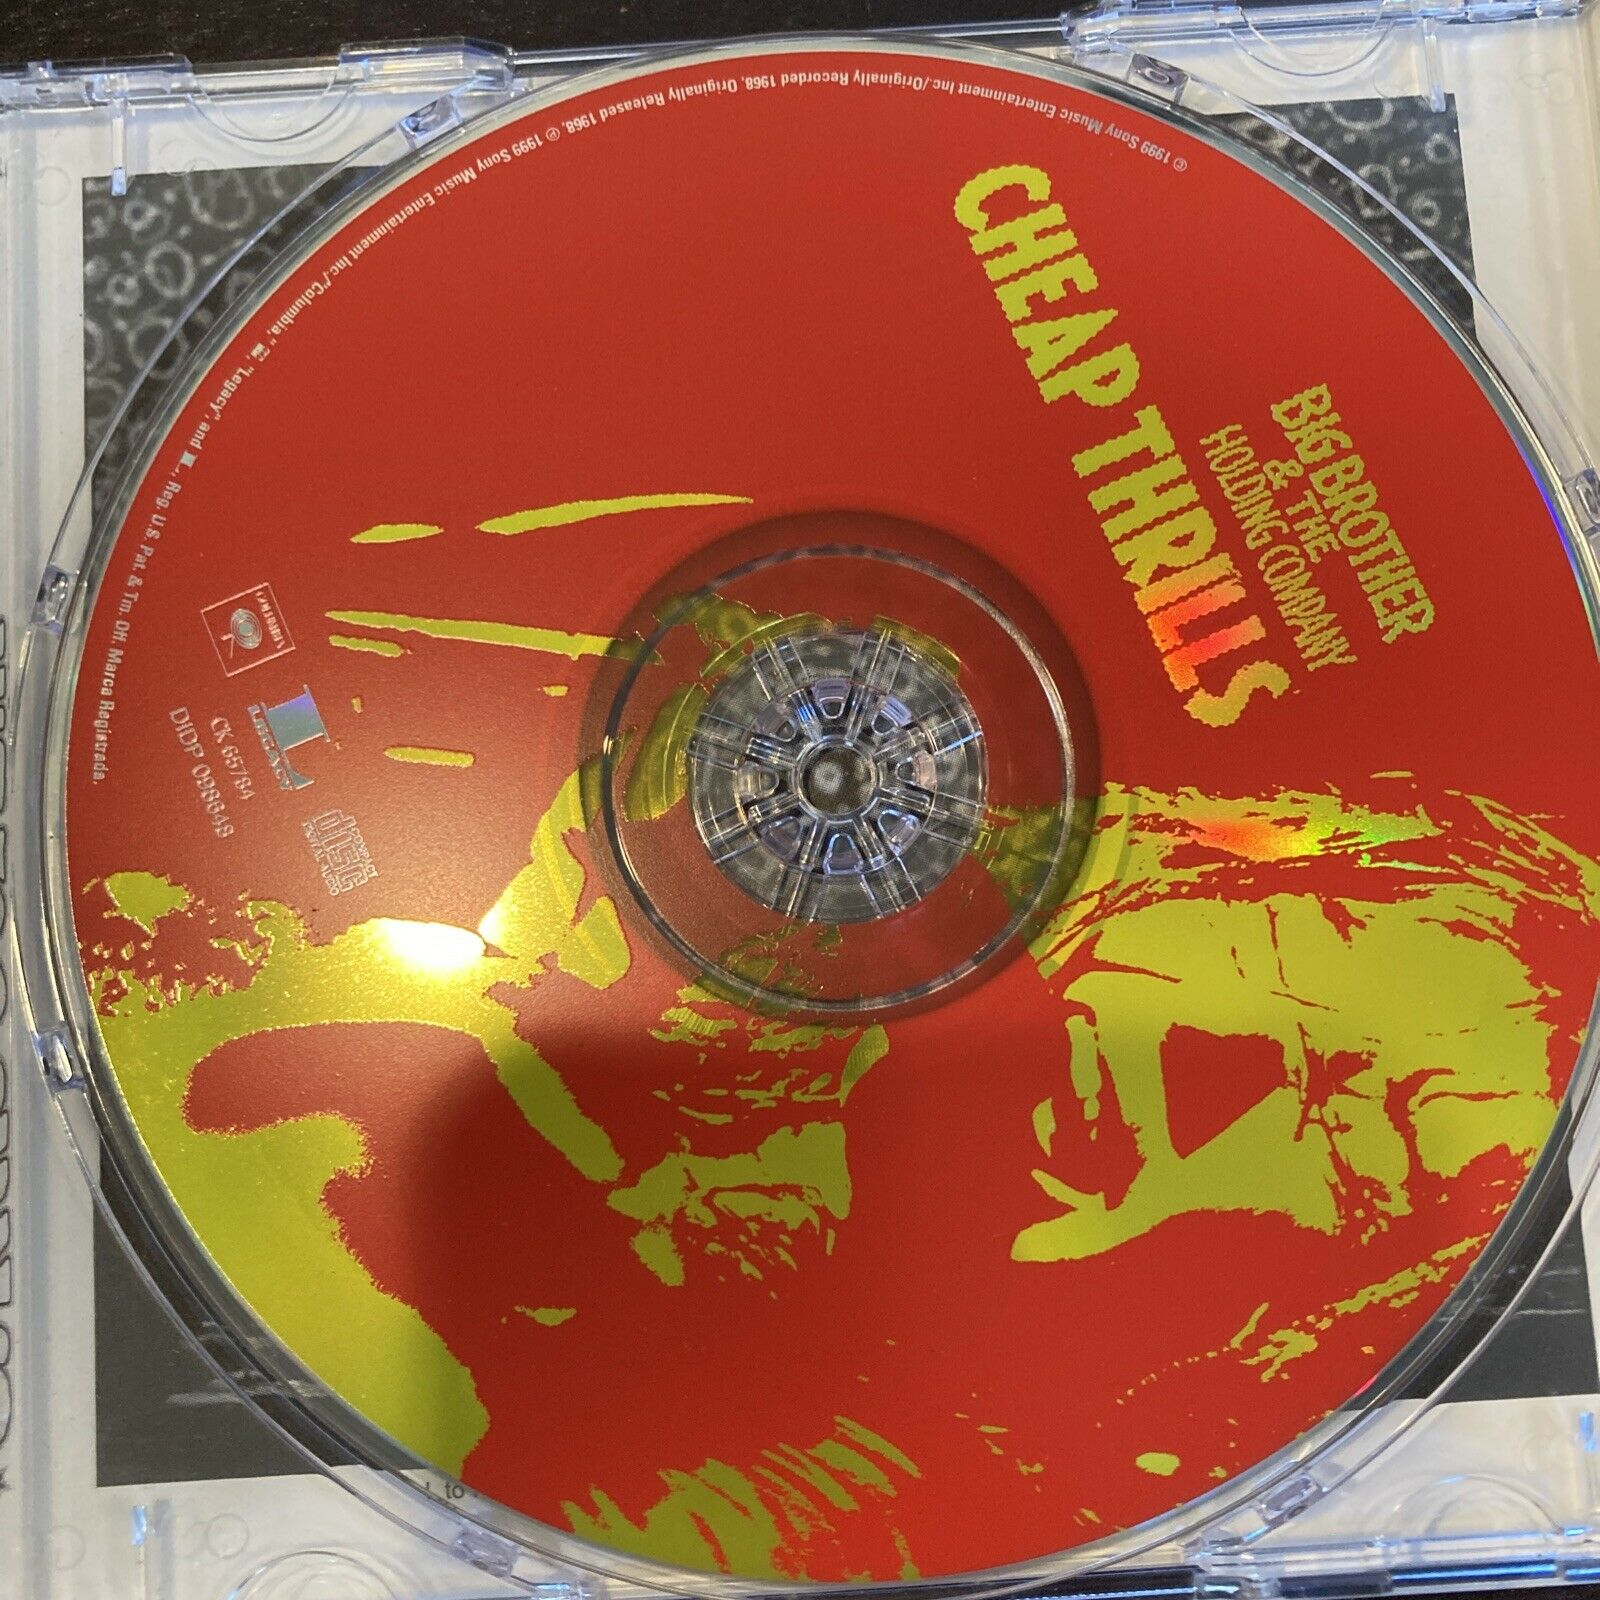 Big Brother & the Holding Company - Cheap Thrills Very Good Nice Disc